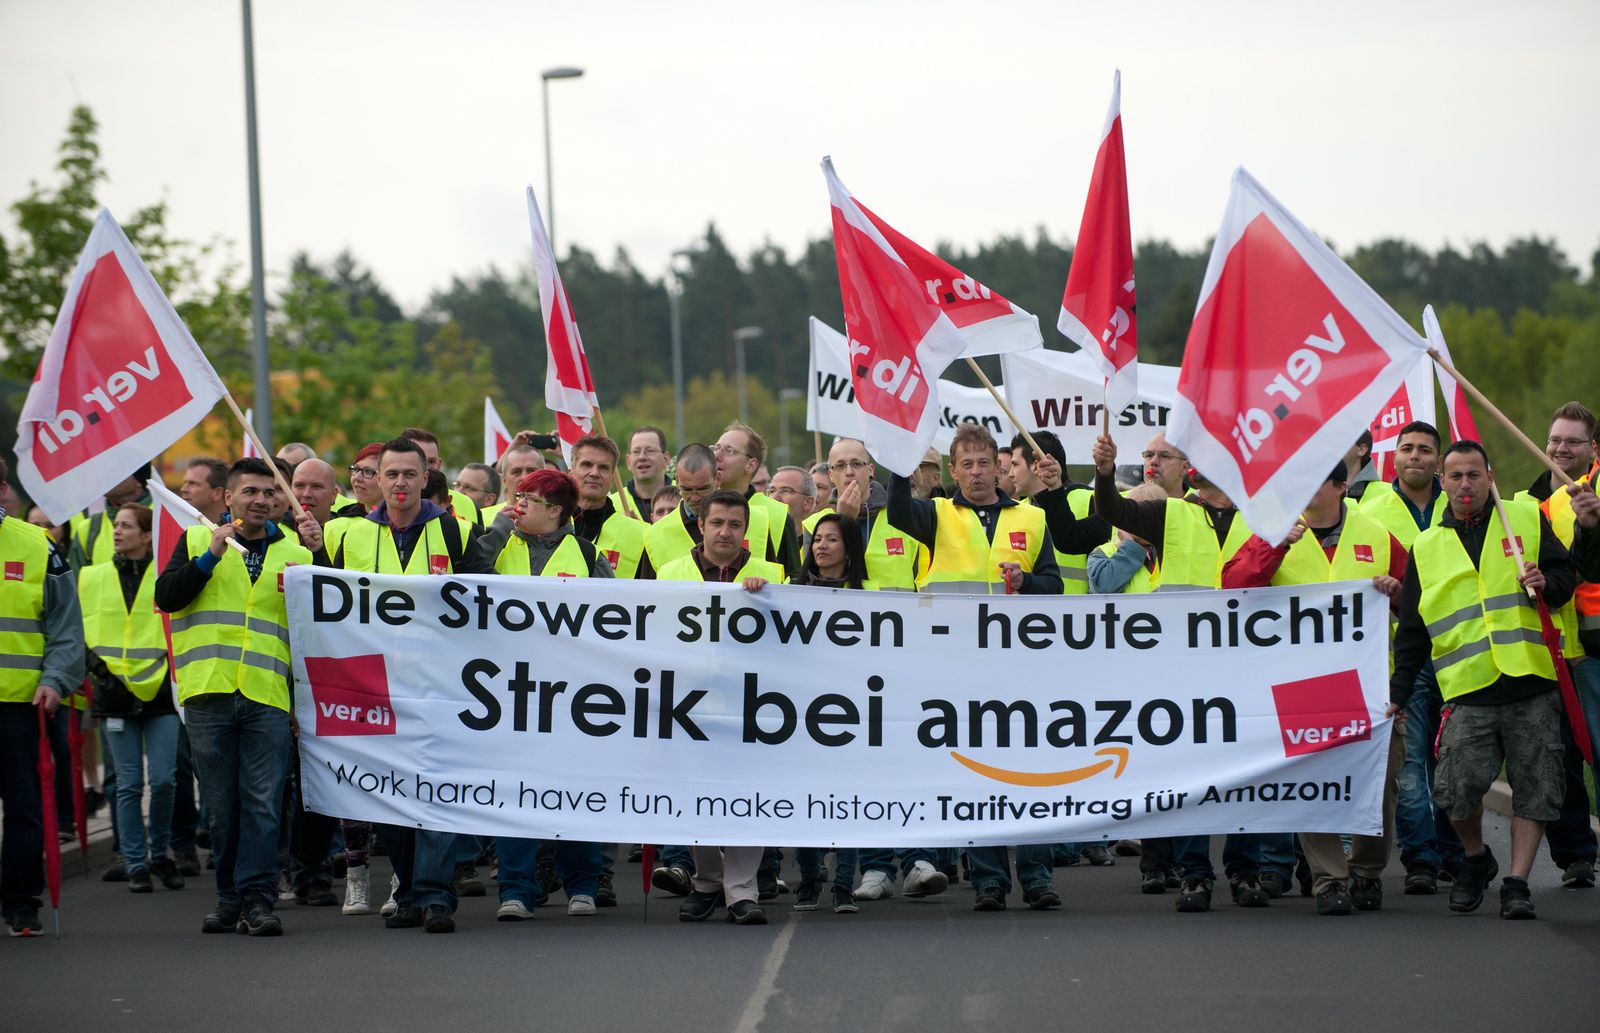 Streik bei Amazon - Bad Hersfeld